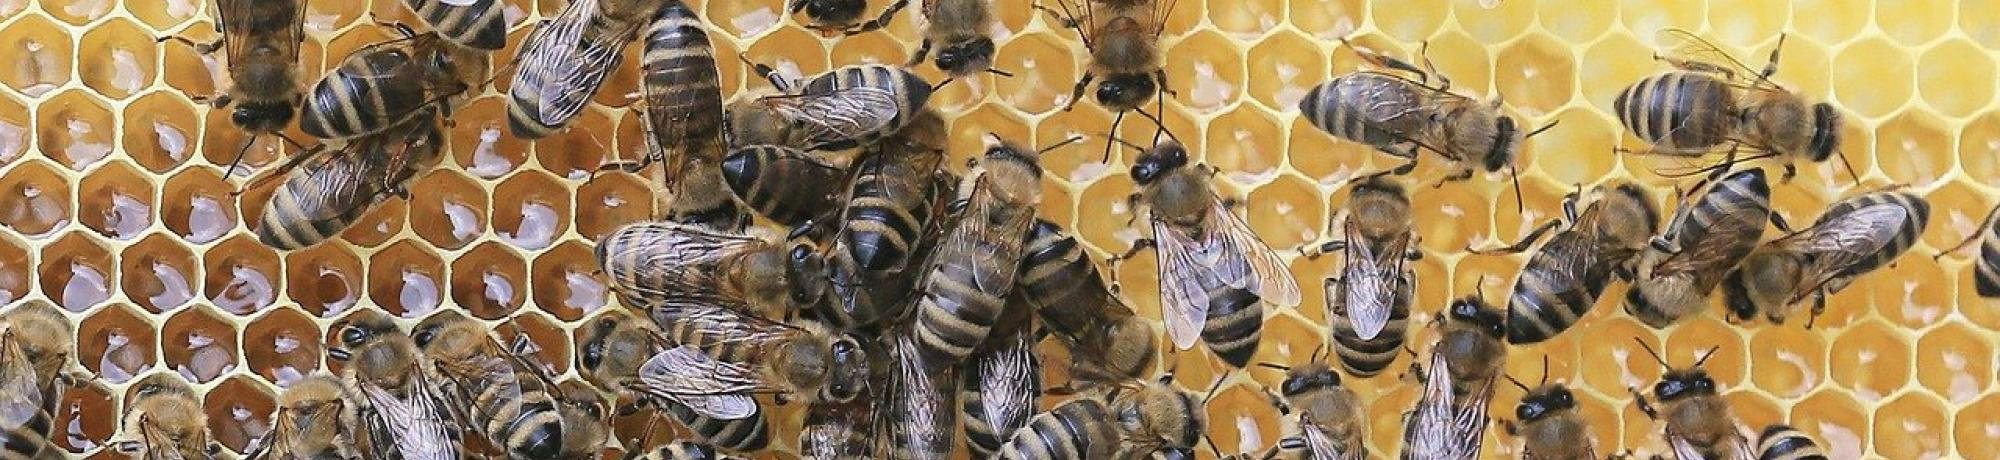 A large gathering of bees on a honeycomb